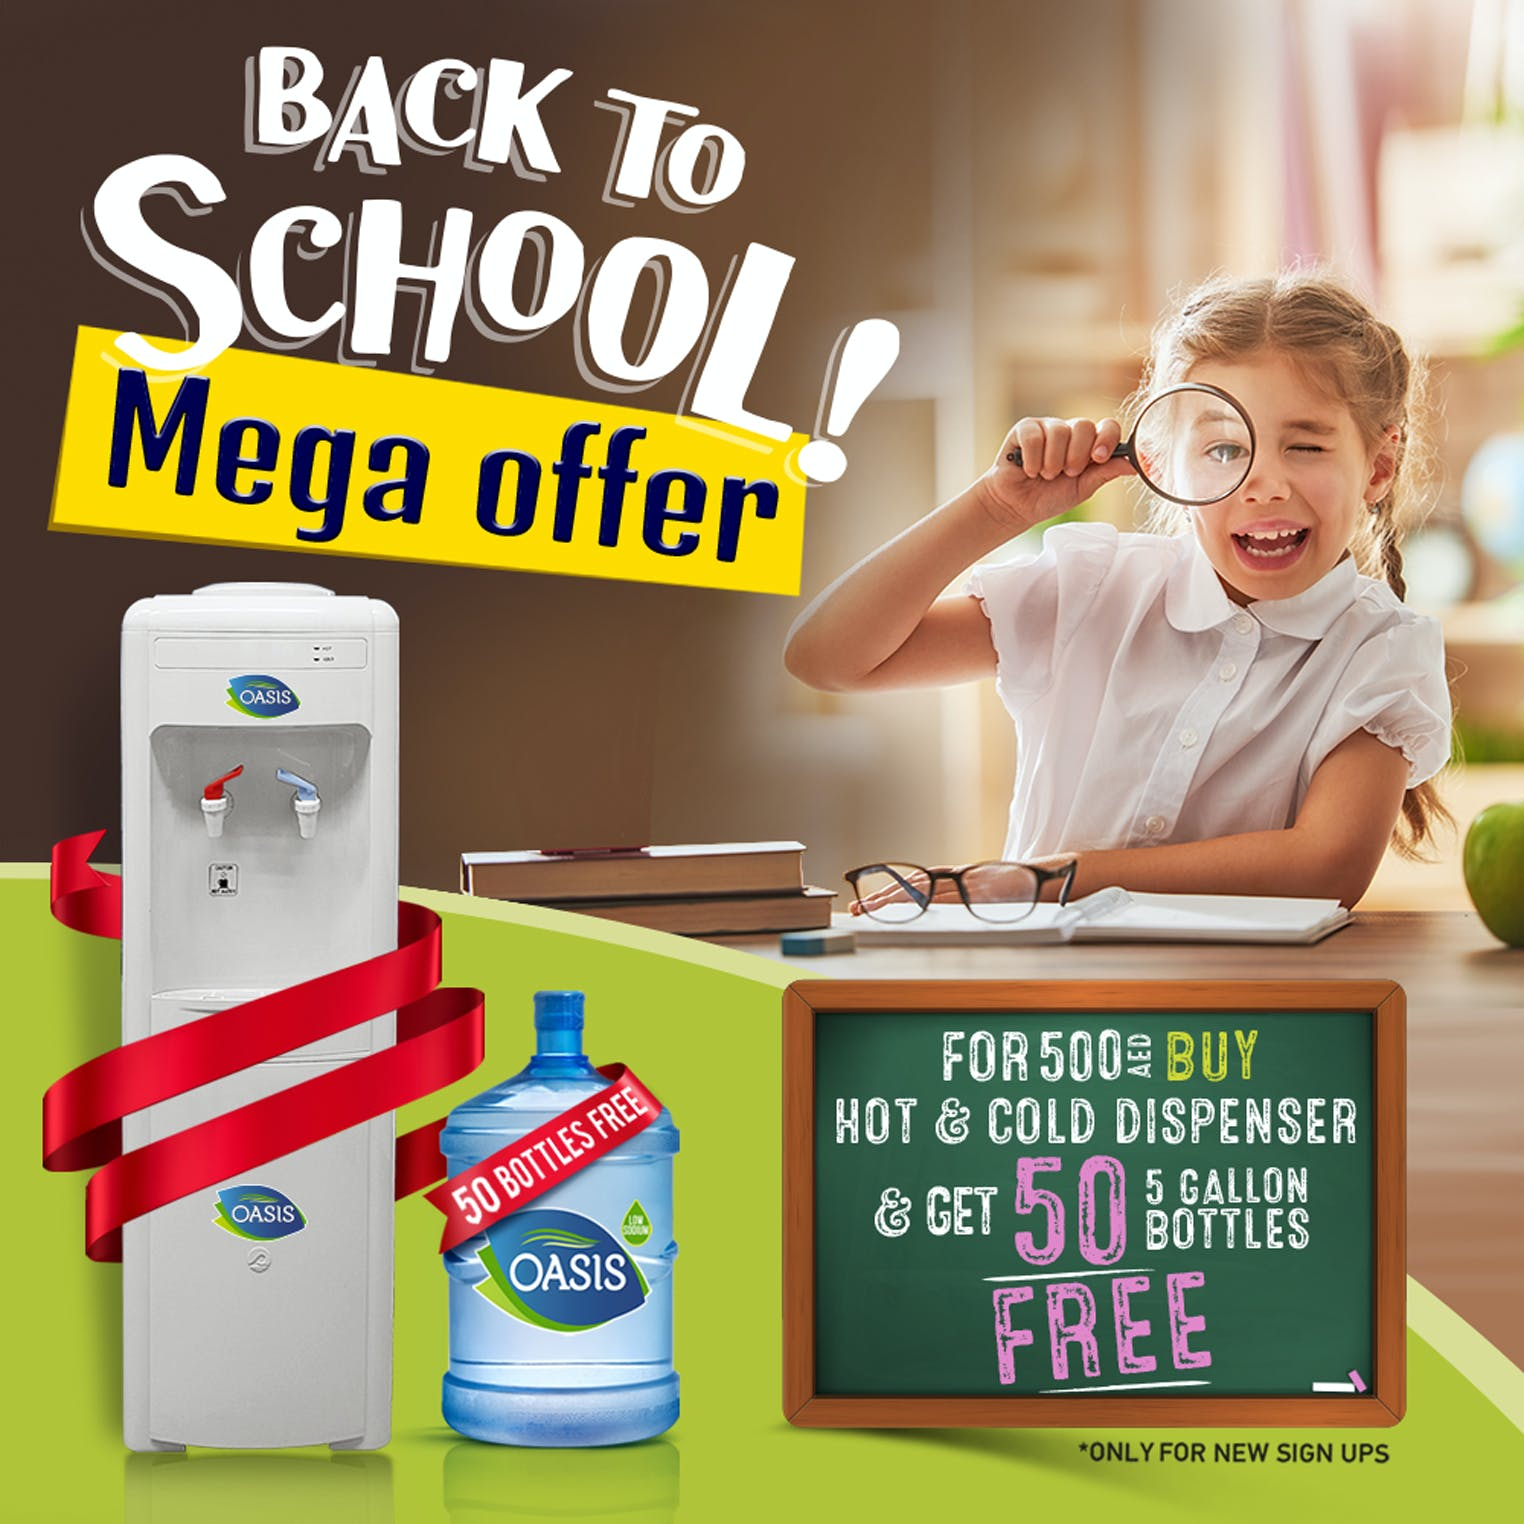 Back to School  Mega Offer - Buy Cooler for AED 500 and Get 50 Five Gallon FREE